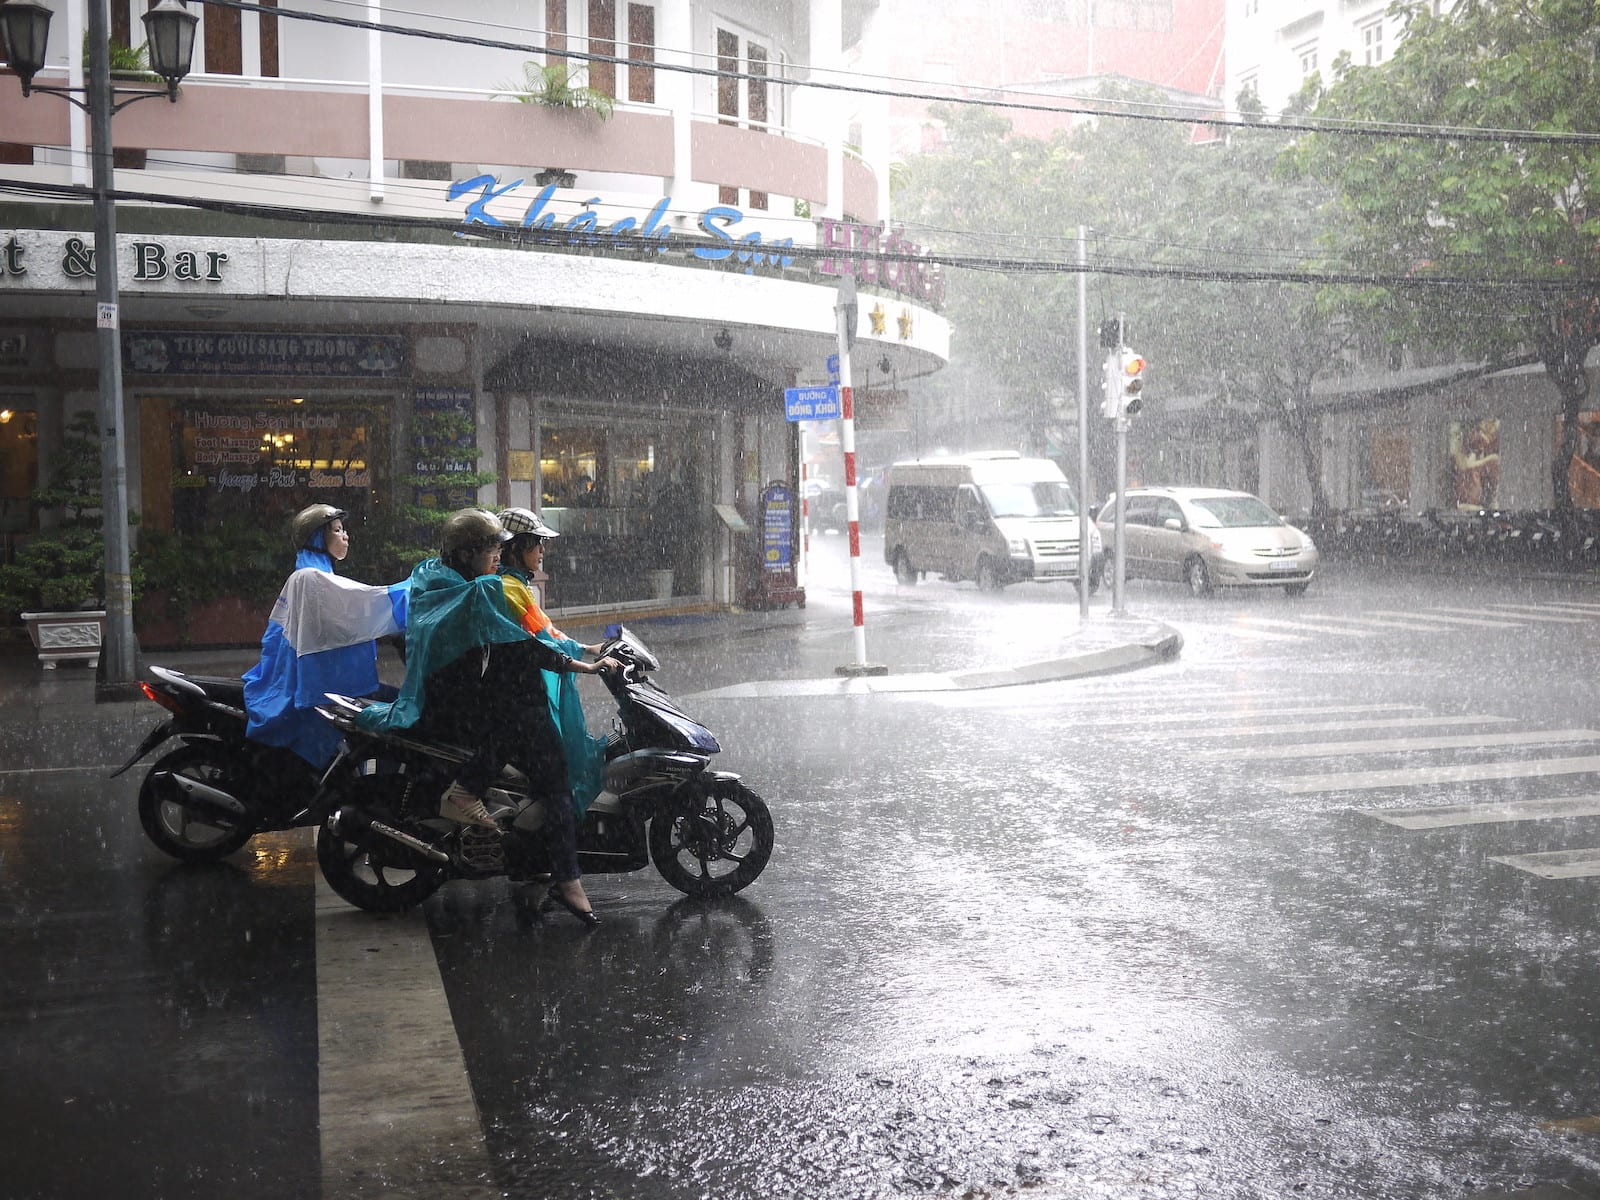 Rainy day Dong Khoi St in Ho Chi Minh City in August